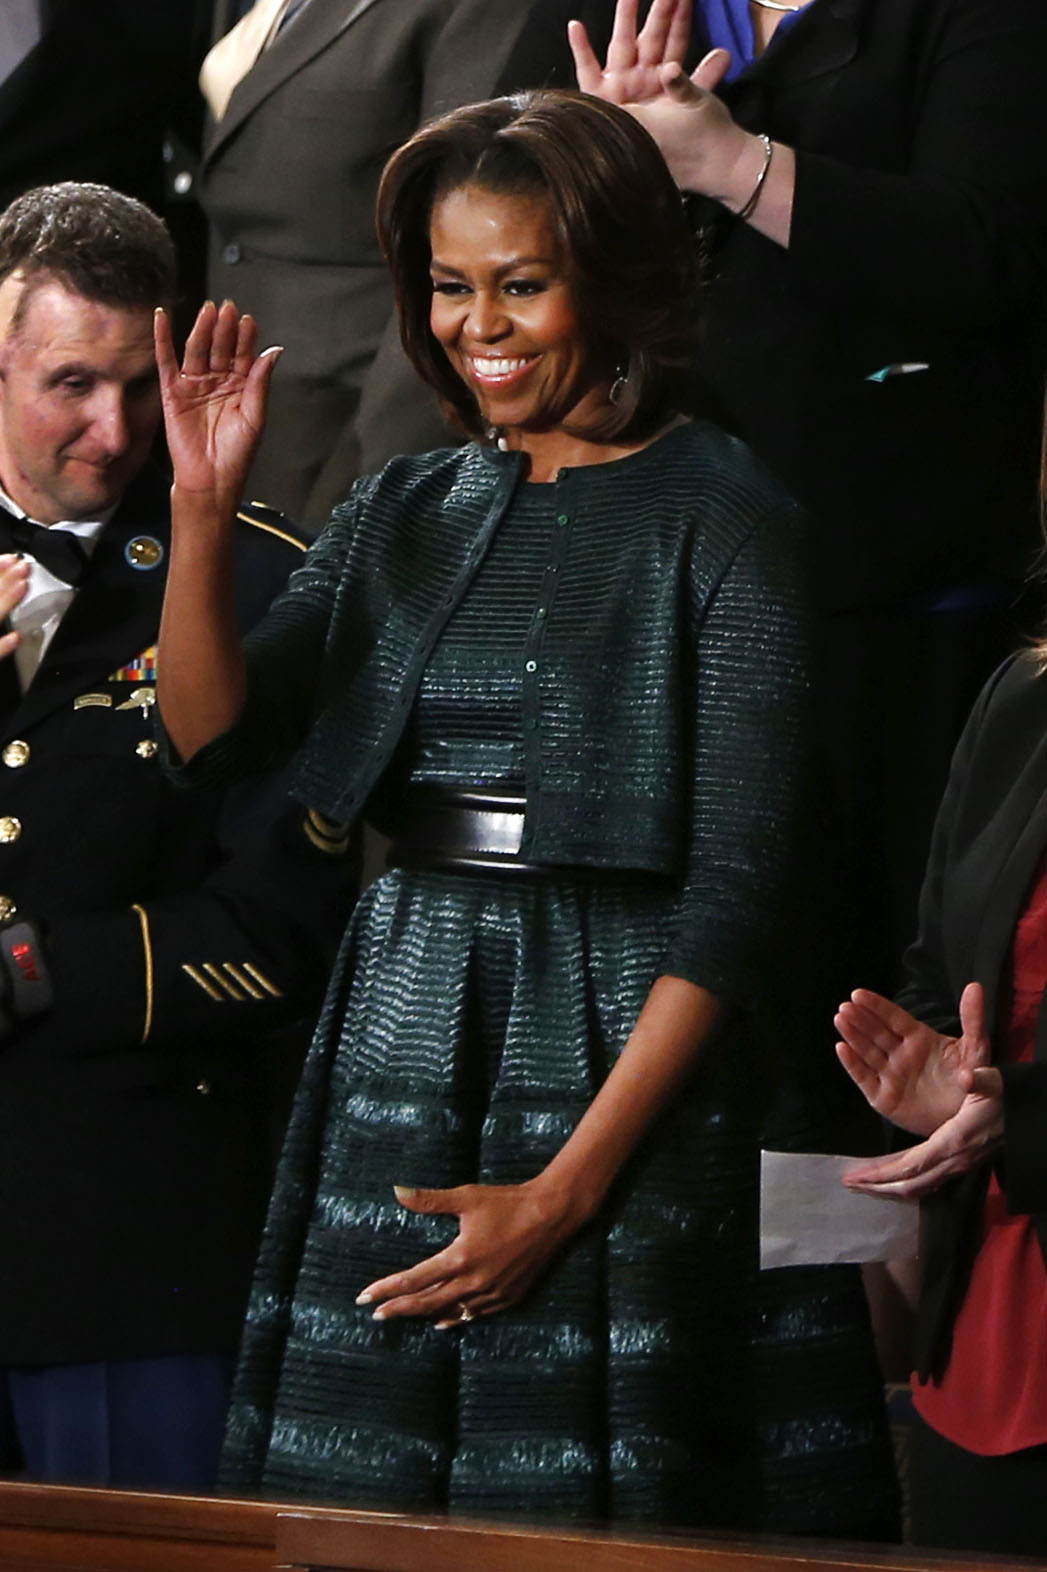 Michelle Obama State of the Union - P 2014